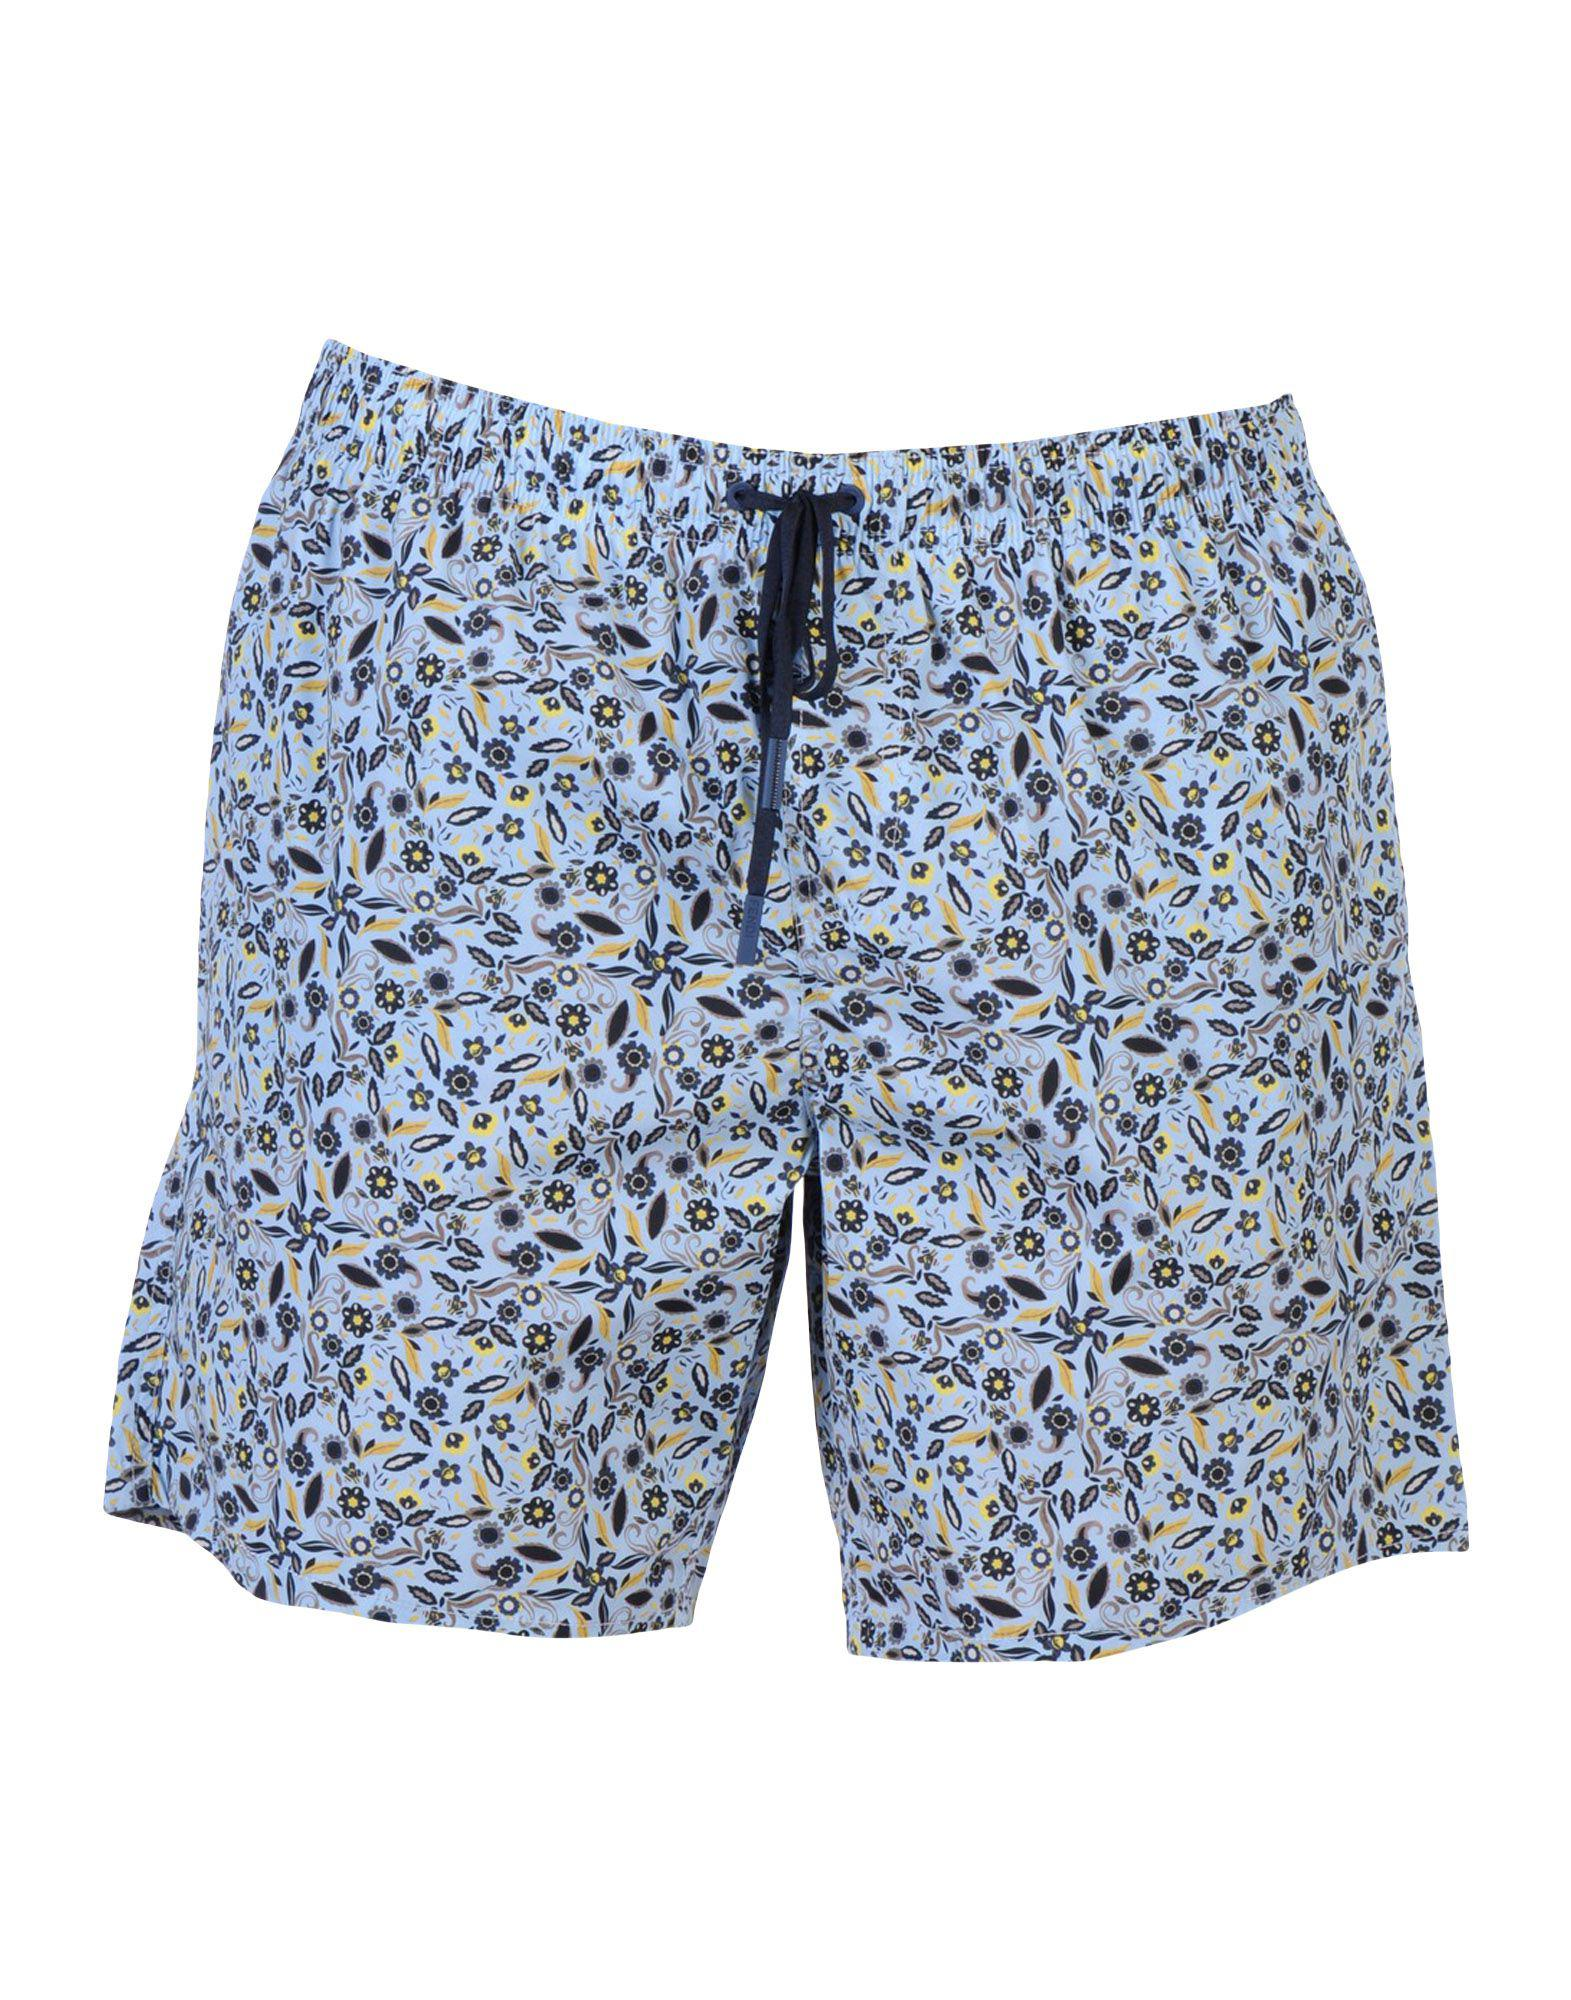 5ec52bd61f Lyst - Fendi Swimming Trunks in Blue for Men